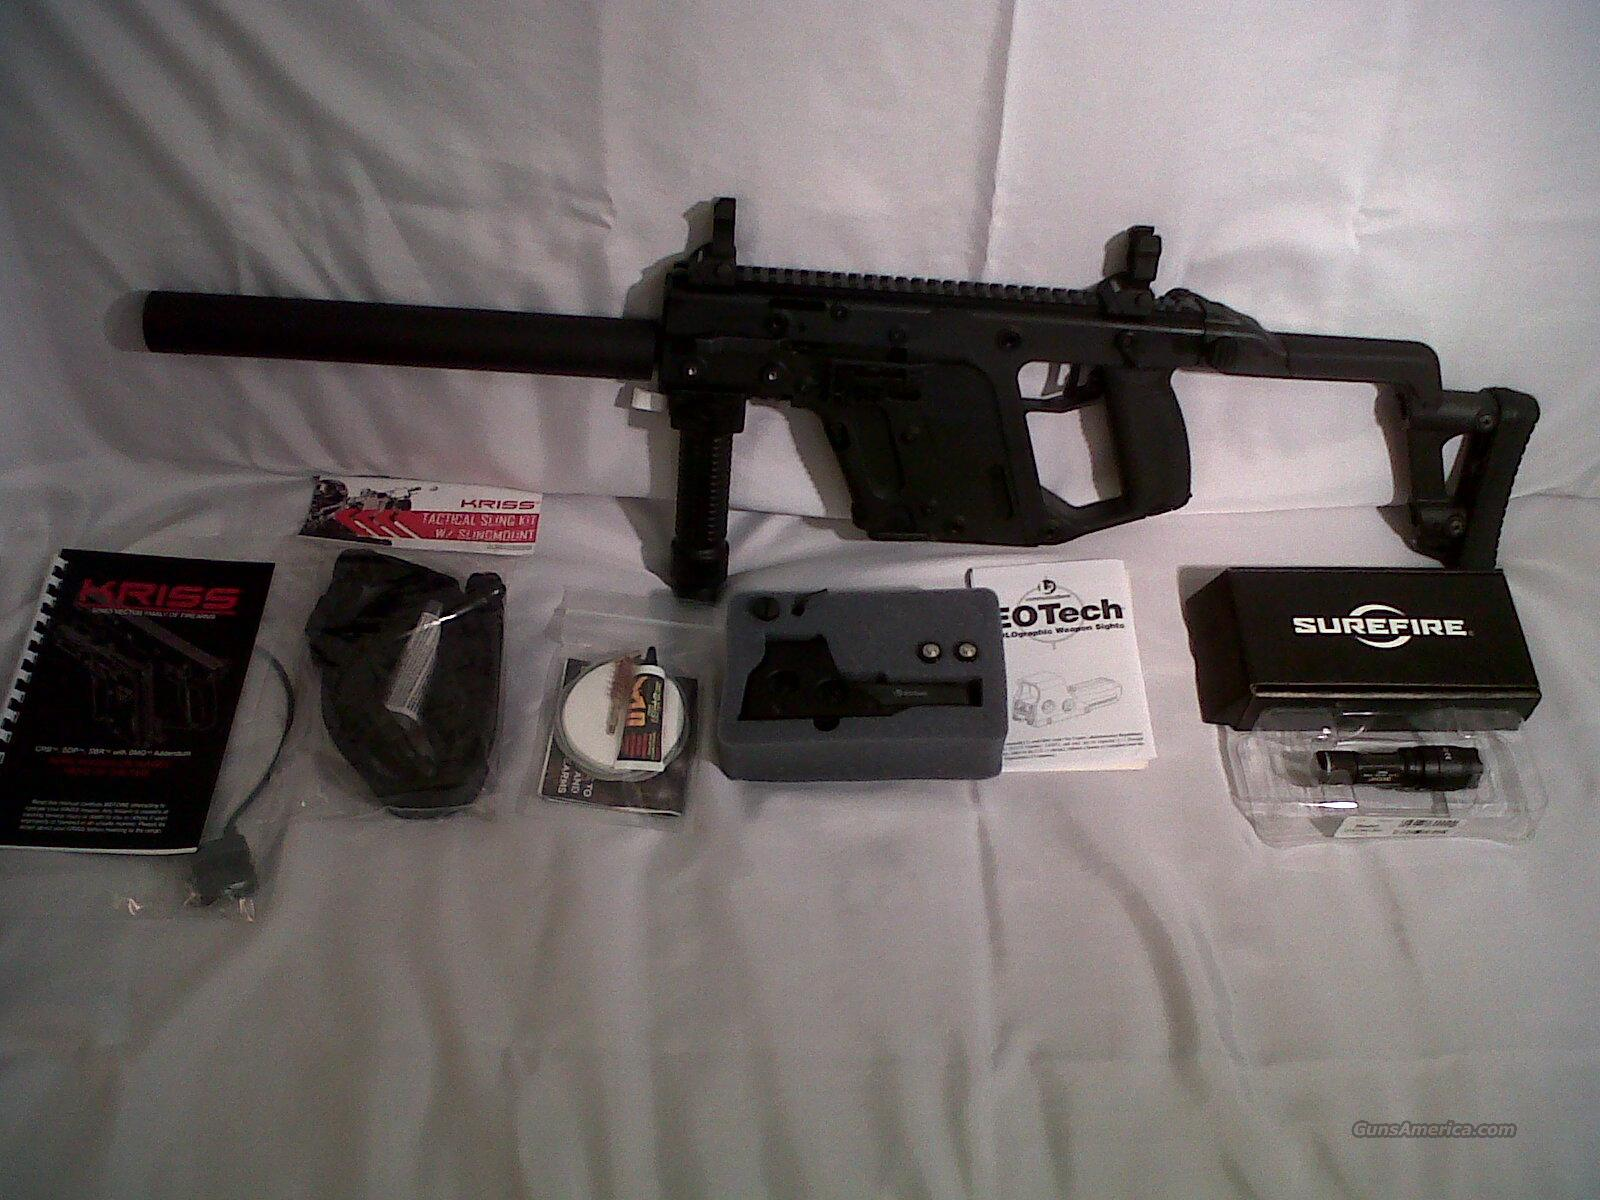 "Kriss Vector Kriss USA VECTOR CRB/SO SUPER-V 45acp 16"" 13 shot Black w/TACPAC  Tactical System 46-state fold NEW in stock  Guns > Rifles > Kriss Tactical Rifles"